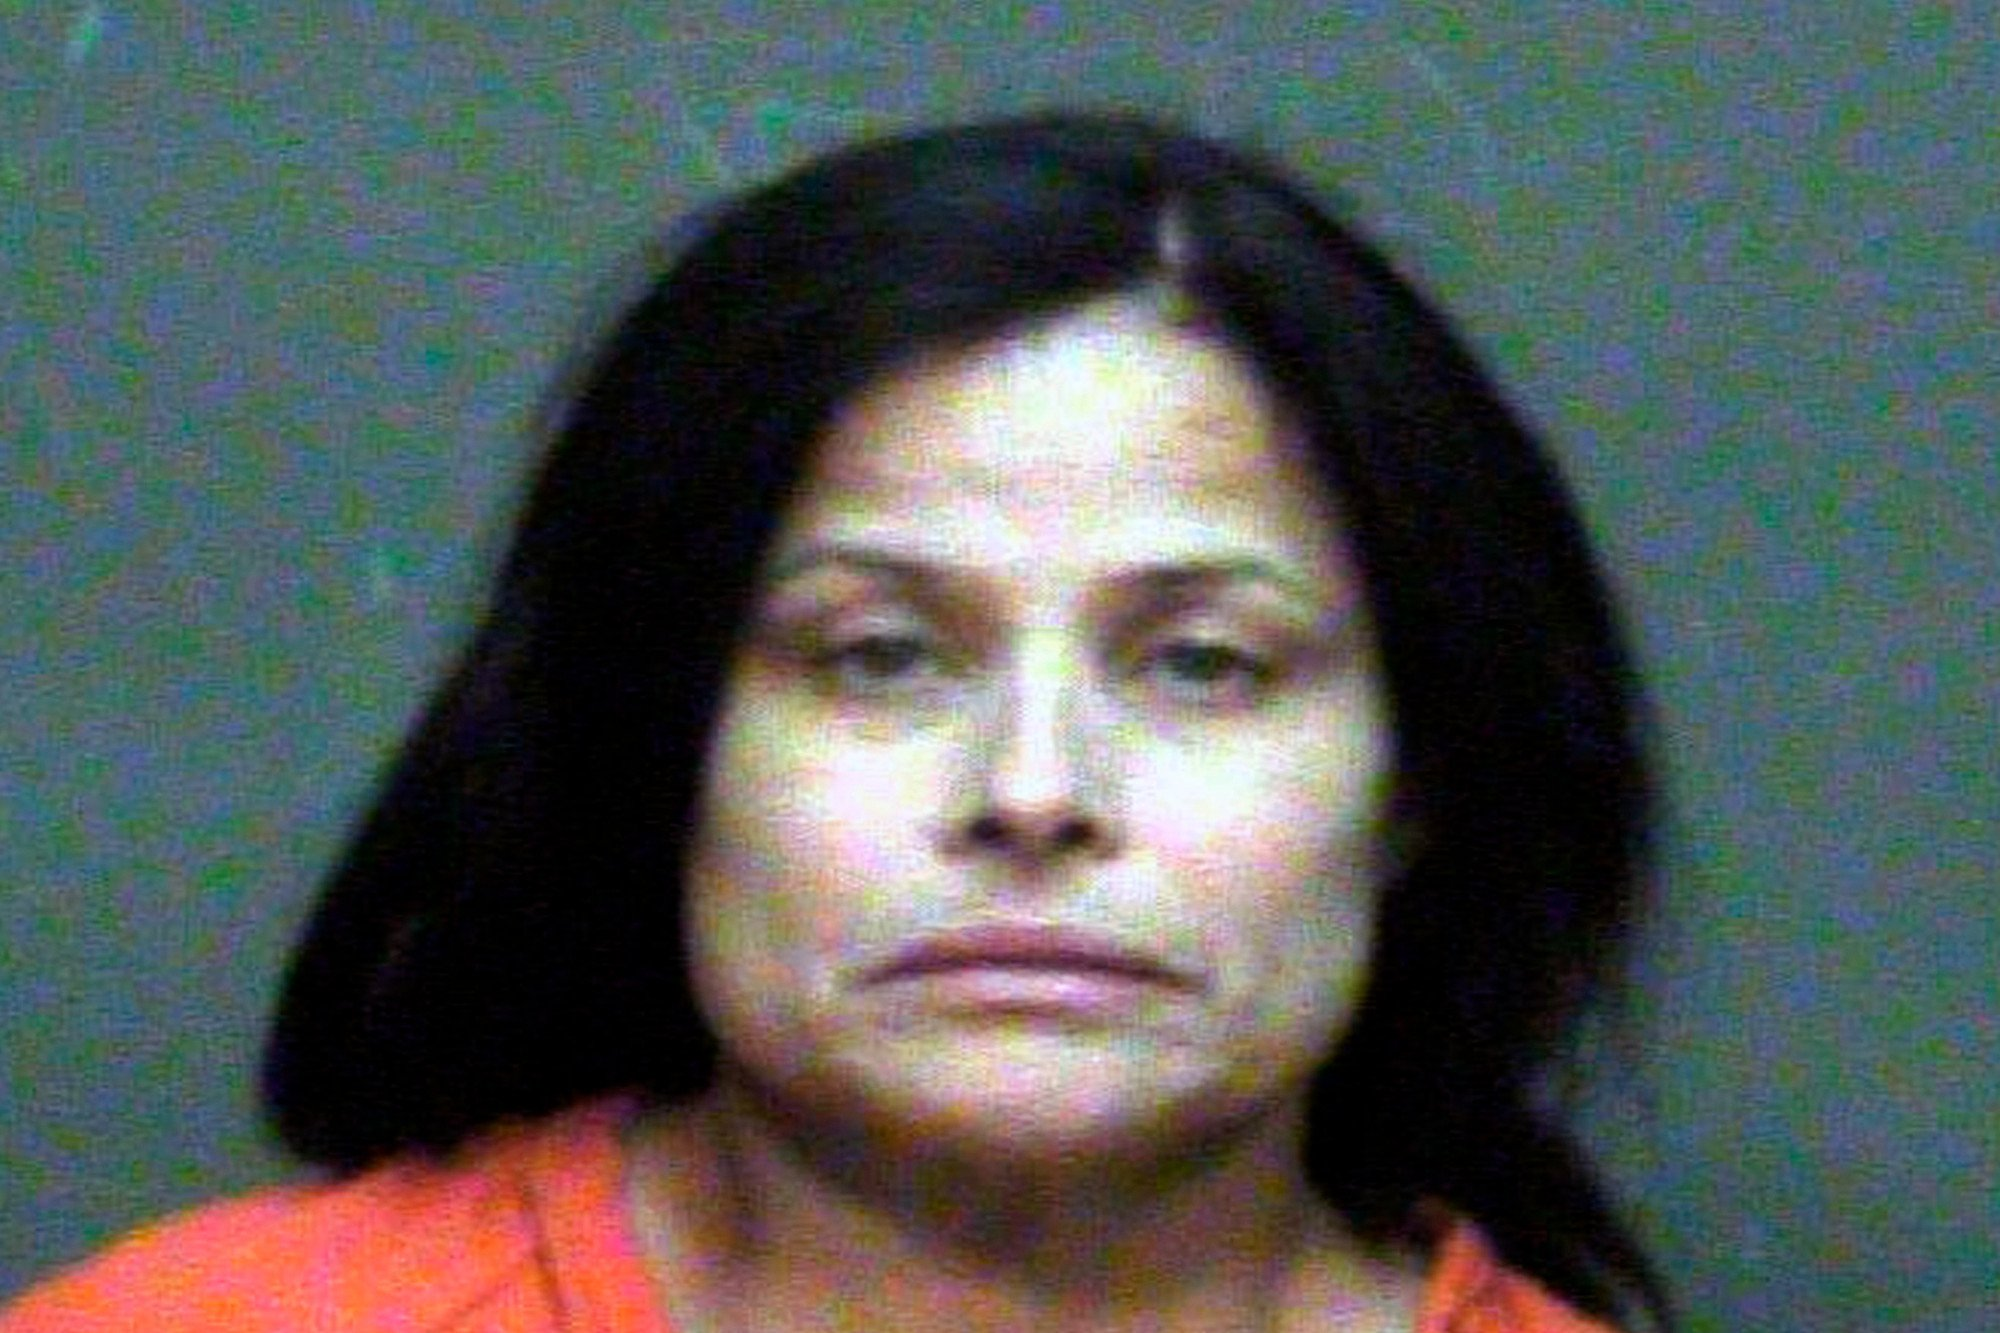 Mom guilty of fatally shoving crucifix down daughter's throat